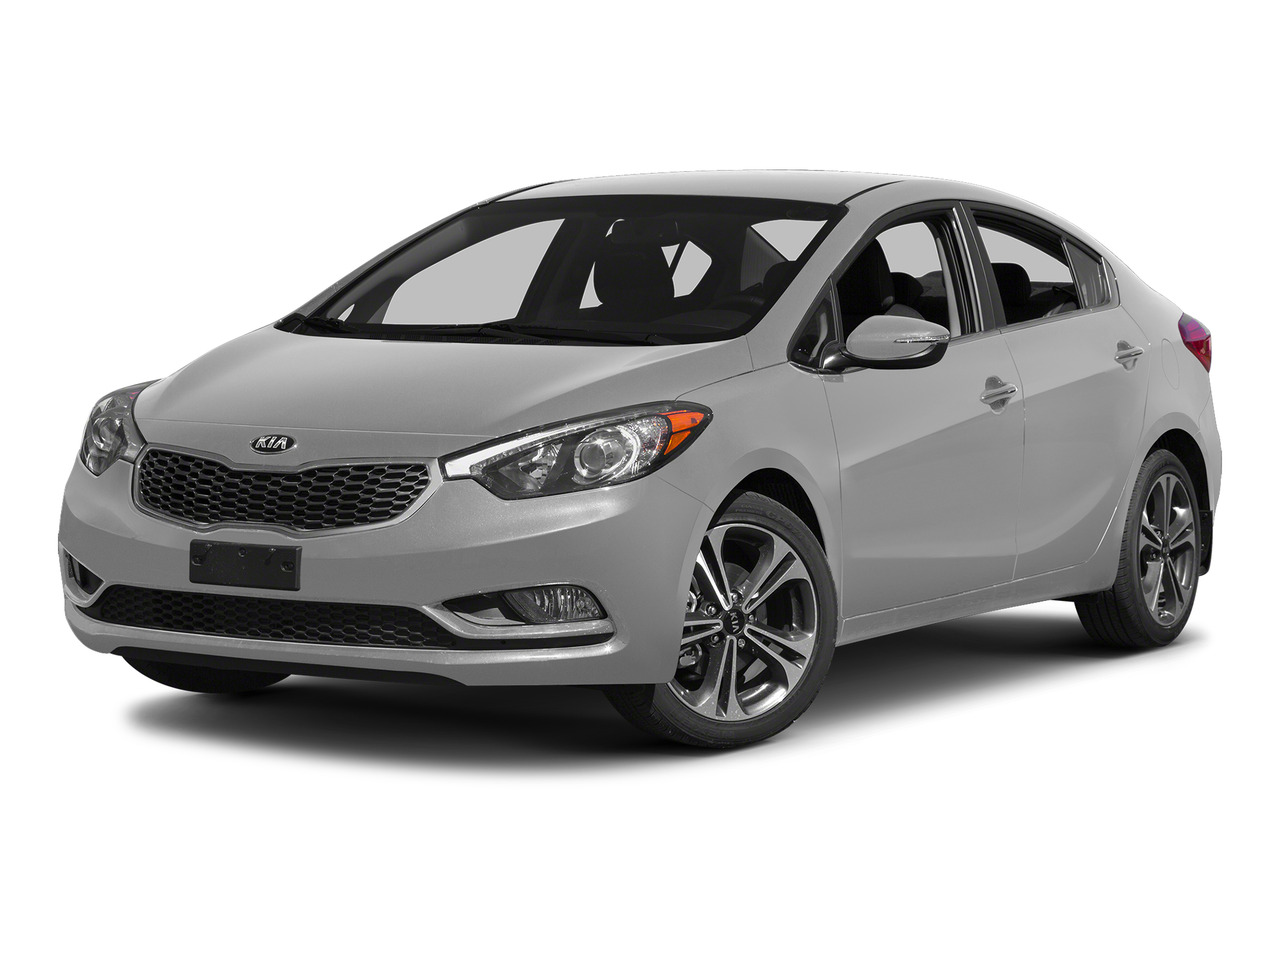 2015 Kia Forte LX 4dr Car Slide 0